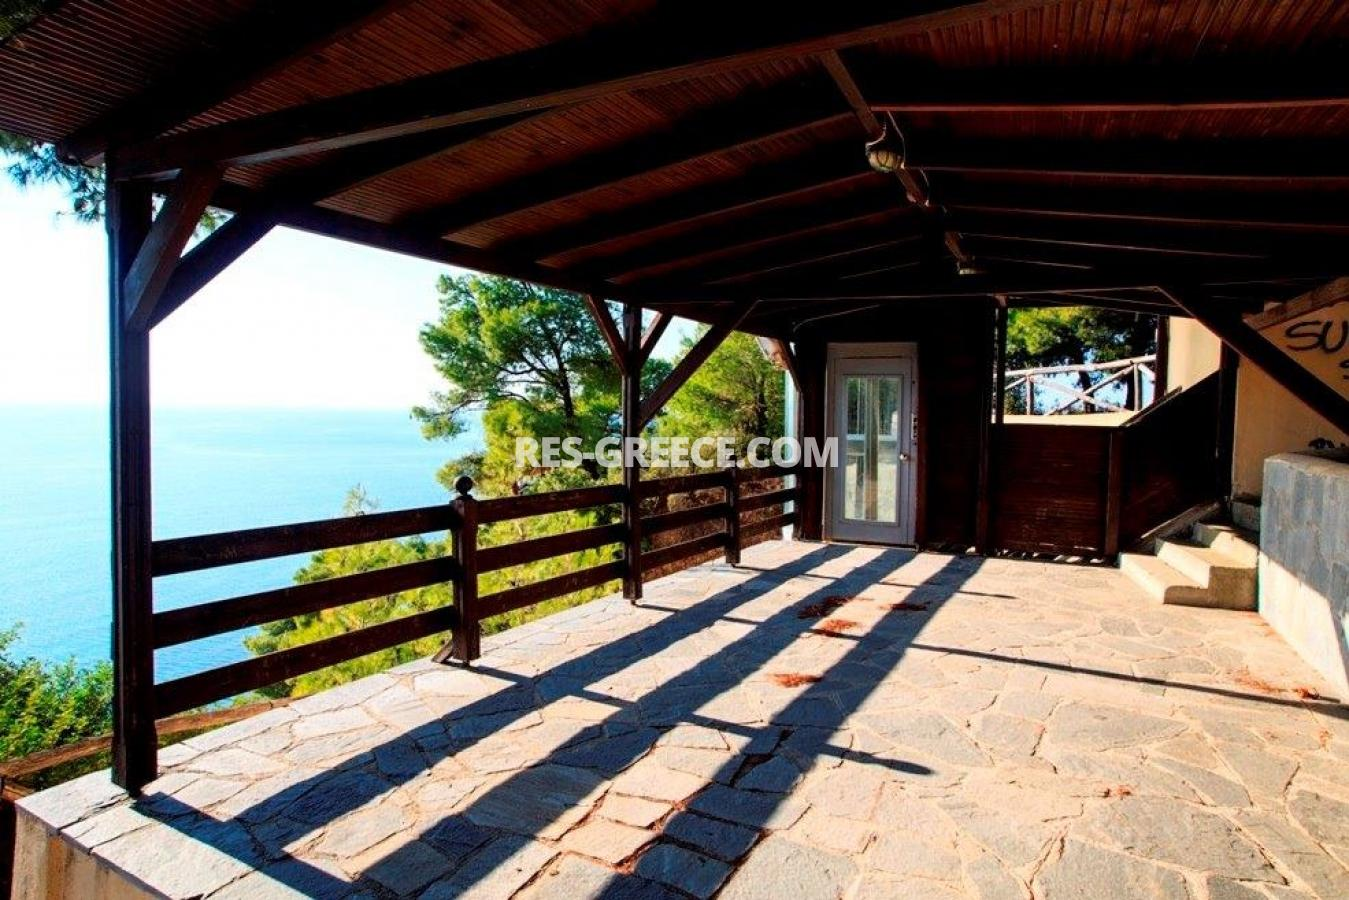 Dasotopi 1, Halkidiki-Kassandra, Greece - beachfront complex with common pool and elevator to the beach - Photo 15